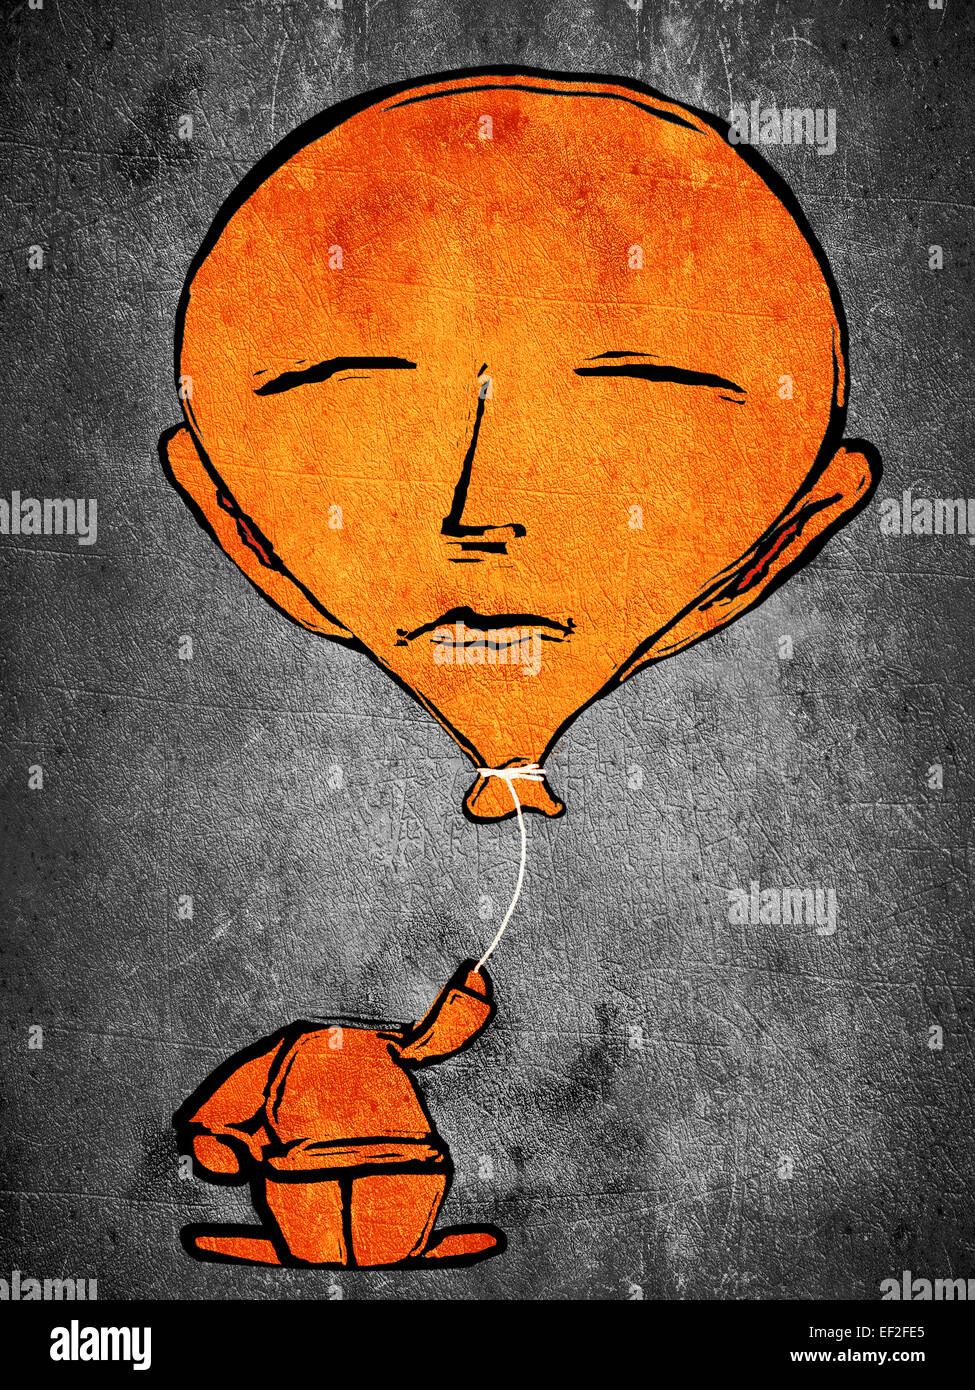 L'homme orange à dormir avec la tête de ballon Photo Stock